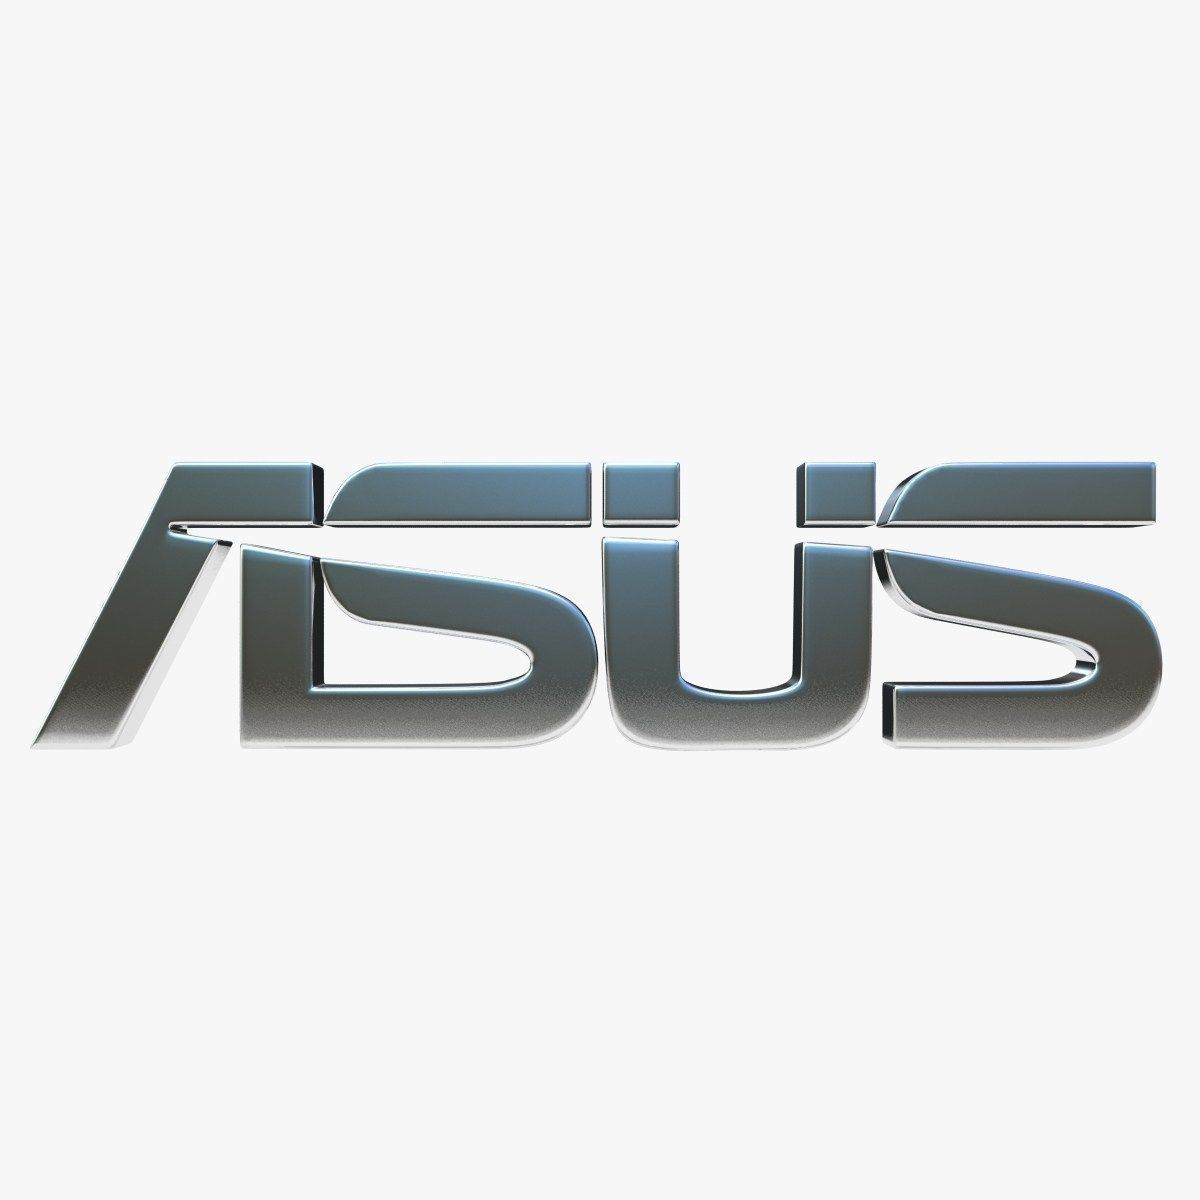 ... asus logo 3d model max obj 3ds fbx 4 ...